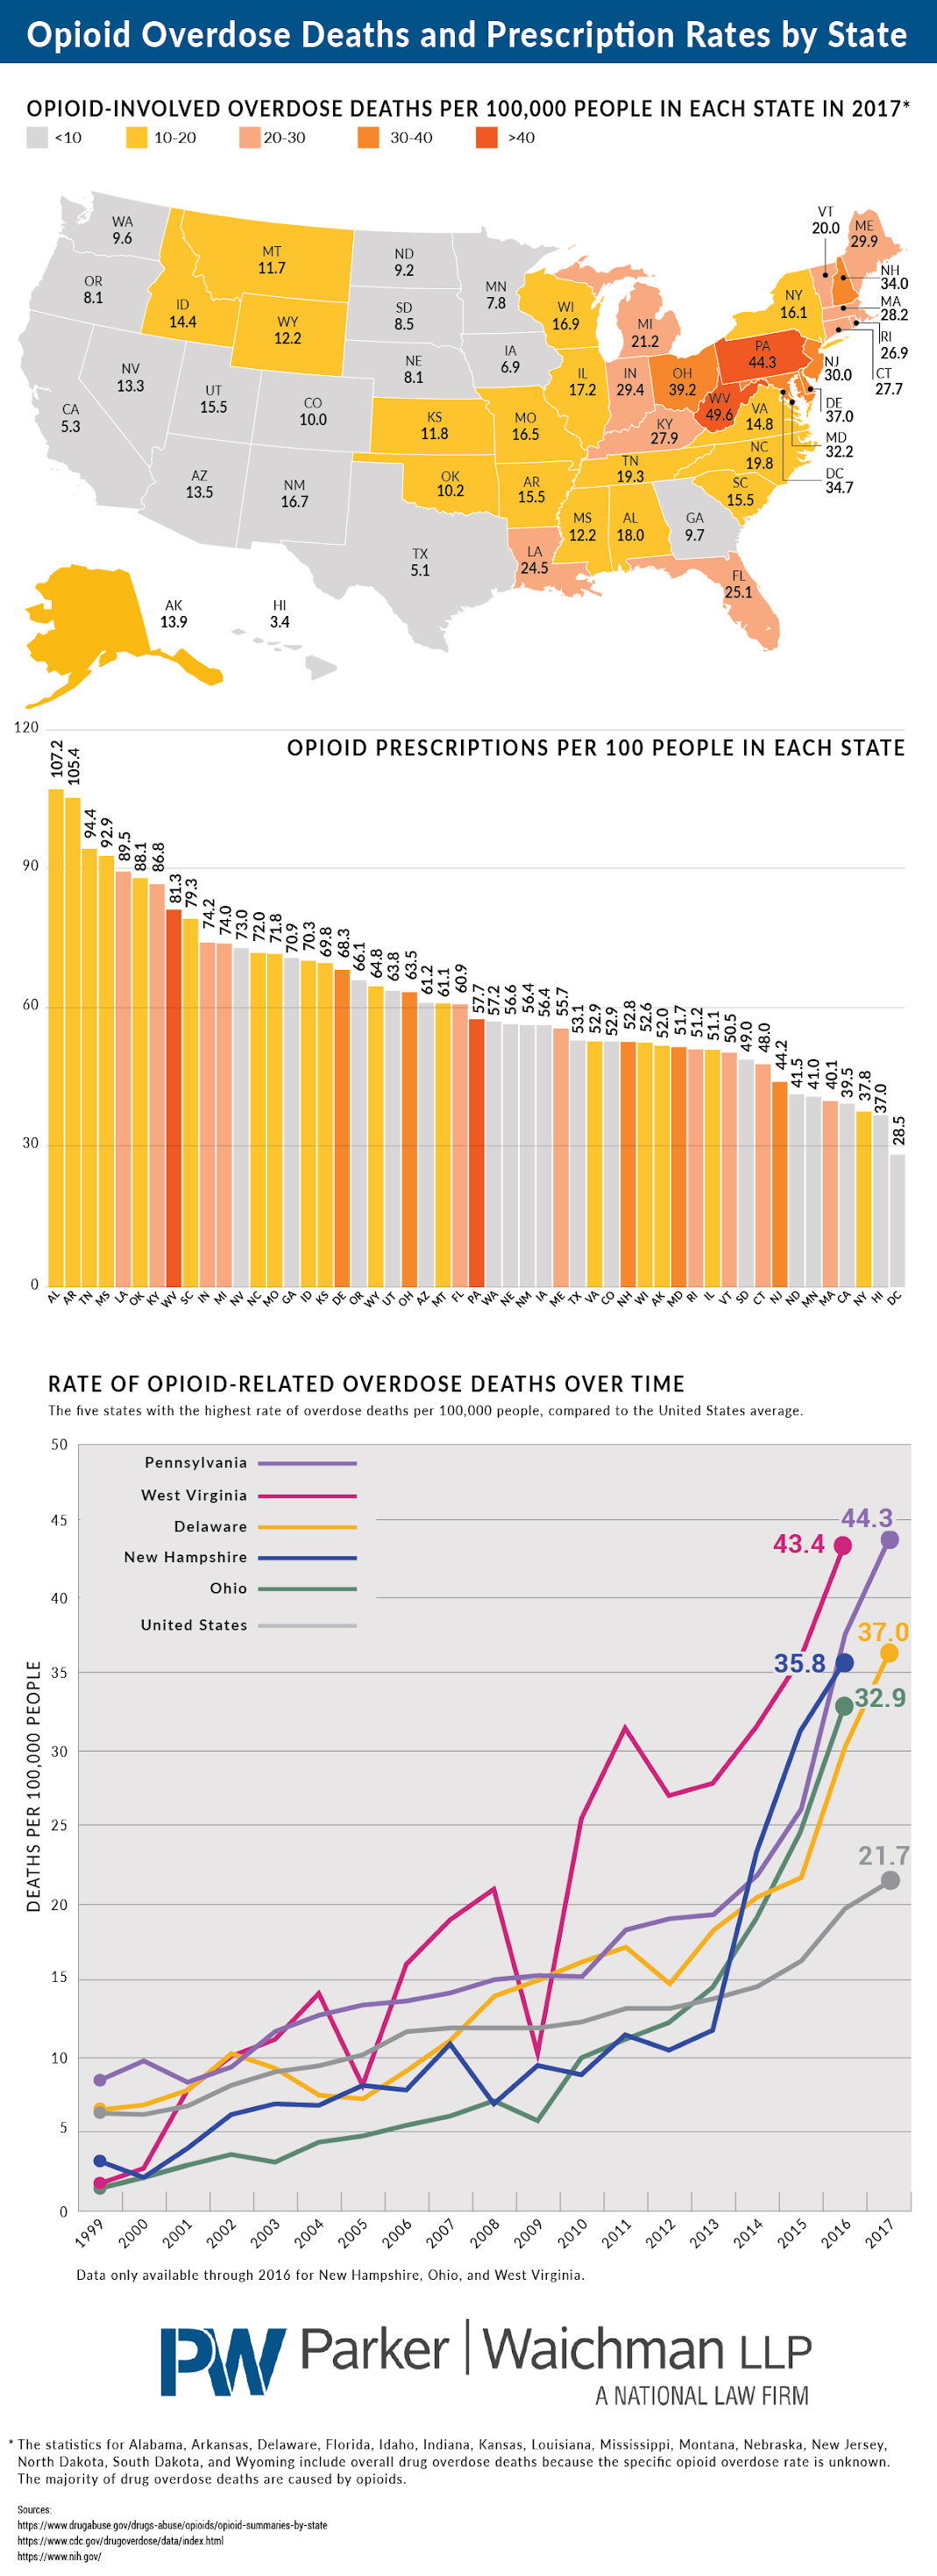 Opioid Overdose Deaths and Prescription Rates by State